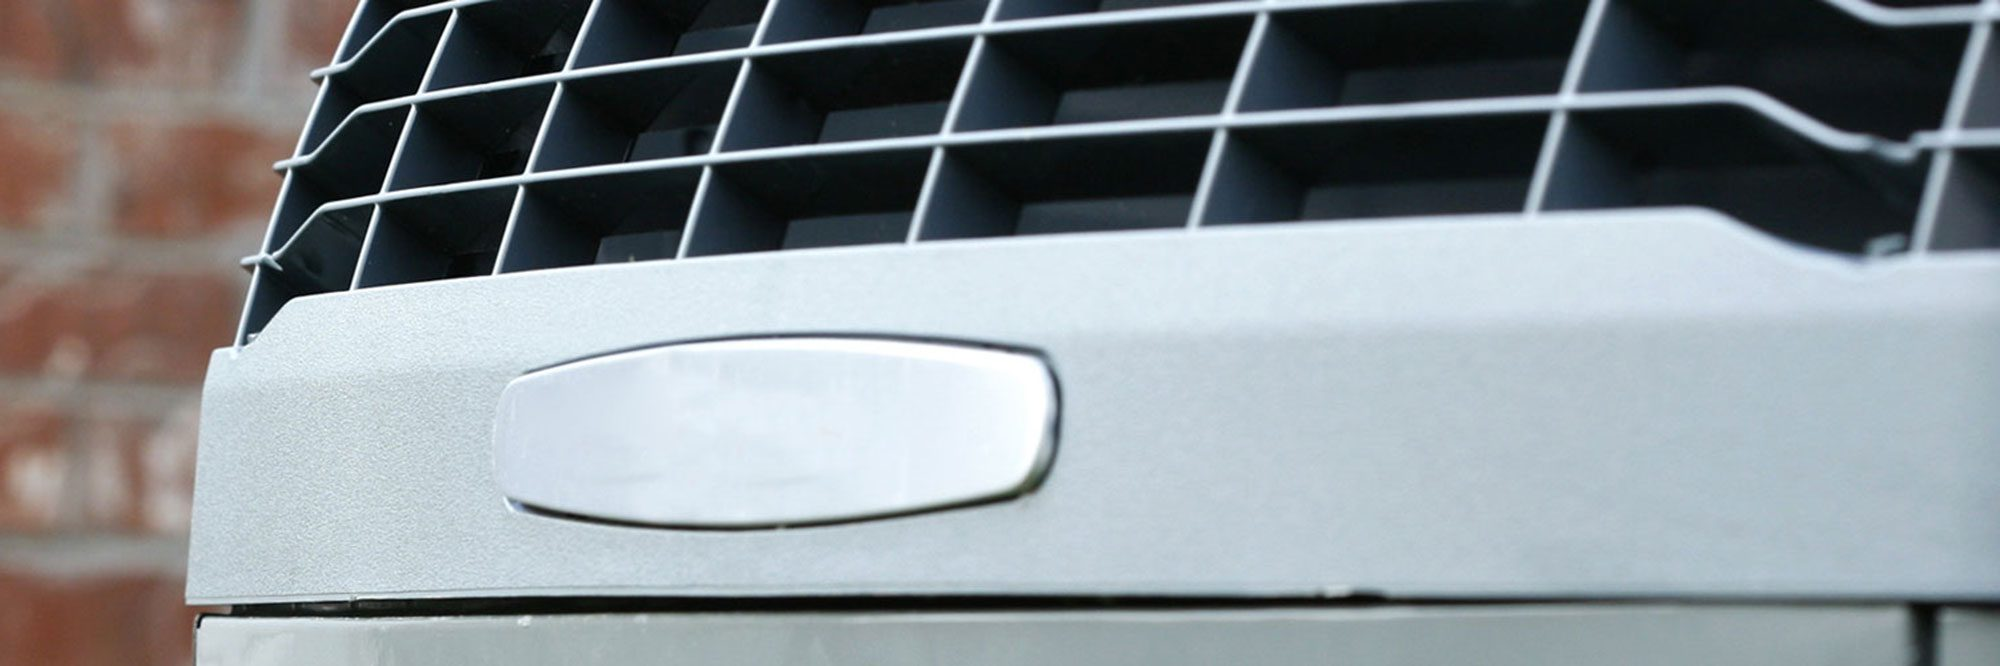 Air Conditioner Close Up